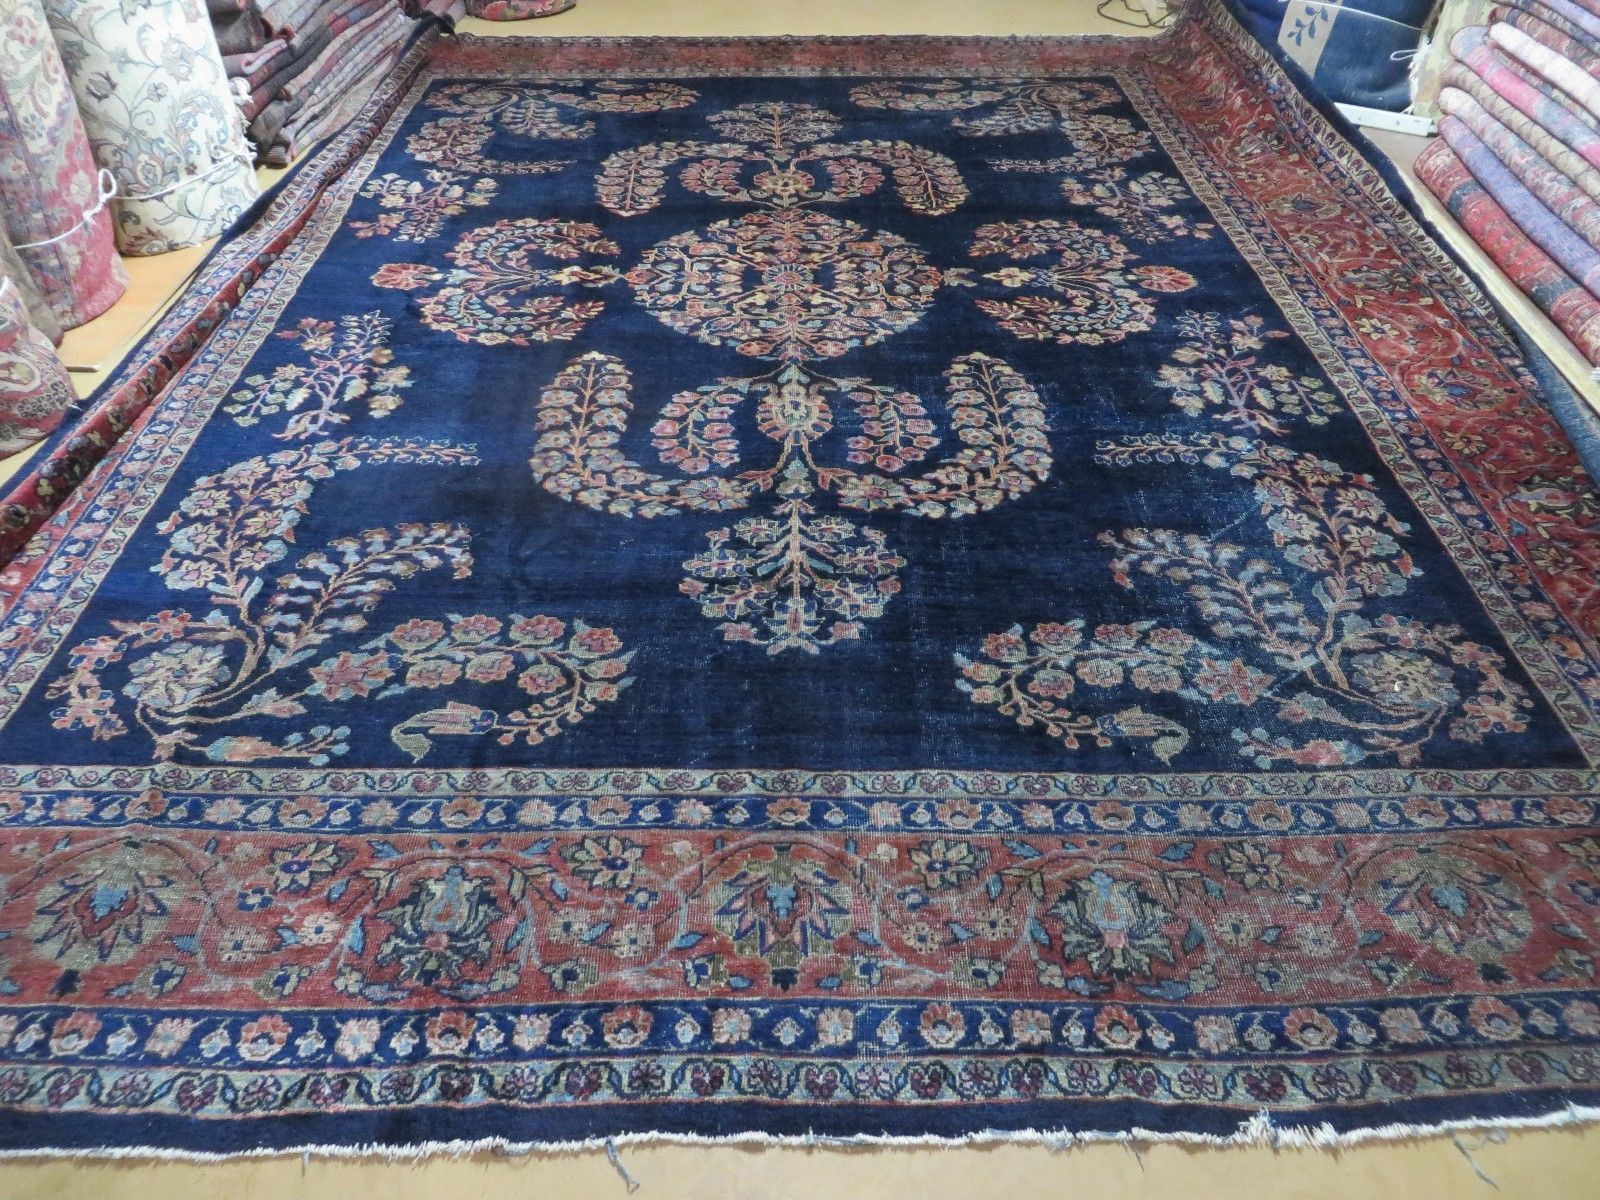 An Antique Art Deco Chiese Rug Rugs On Carpet Carpets For Less Rugs